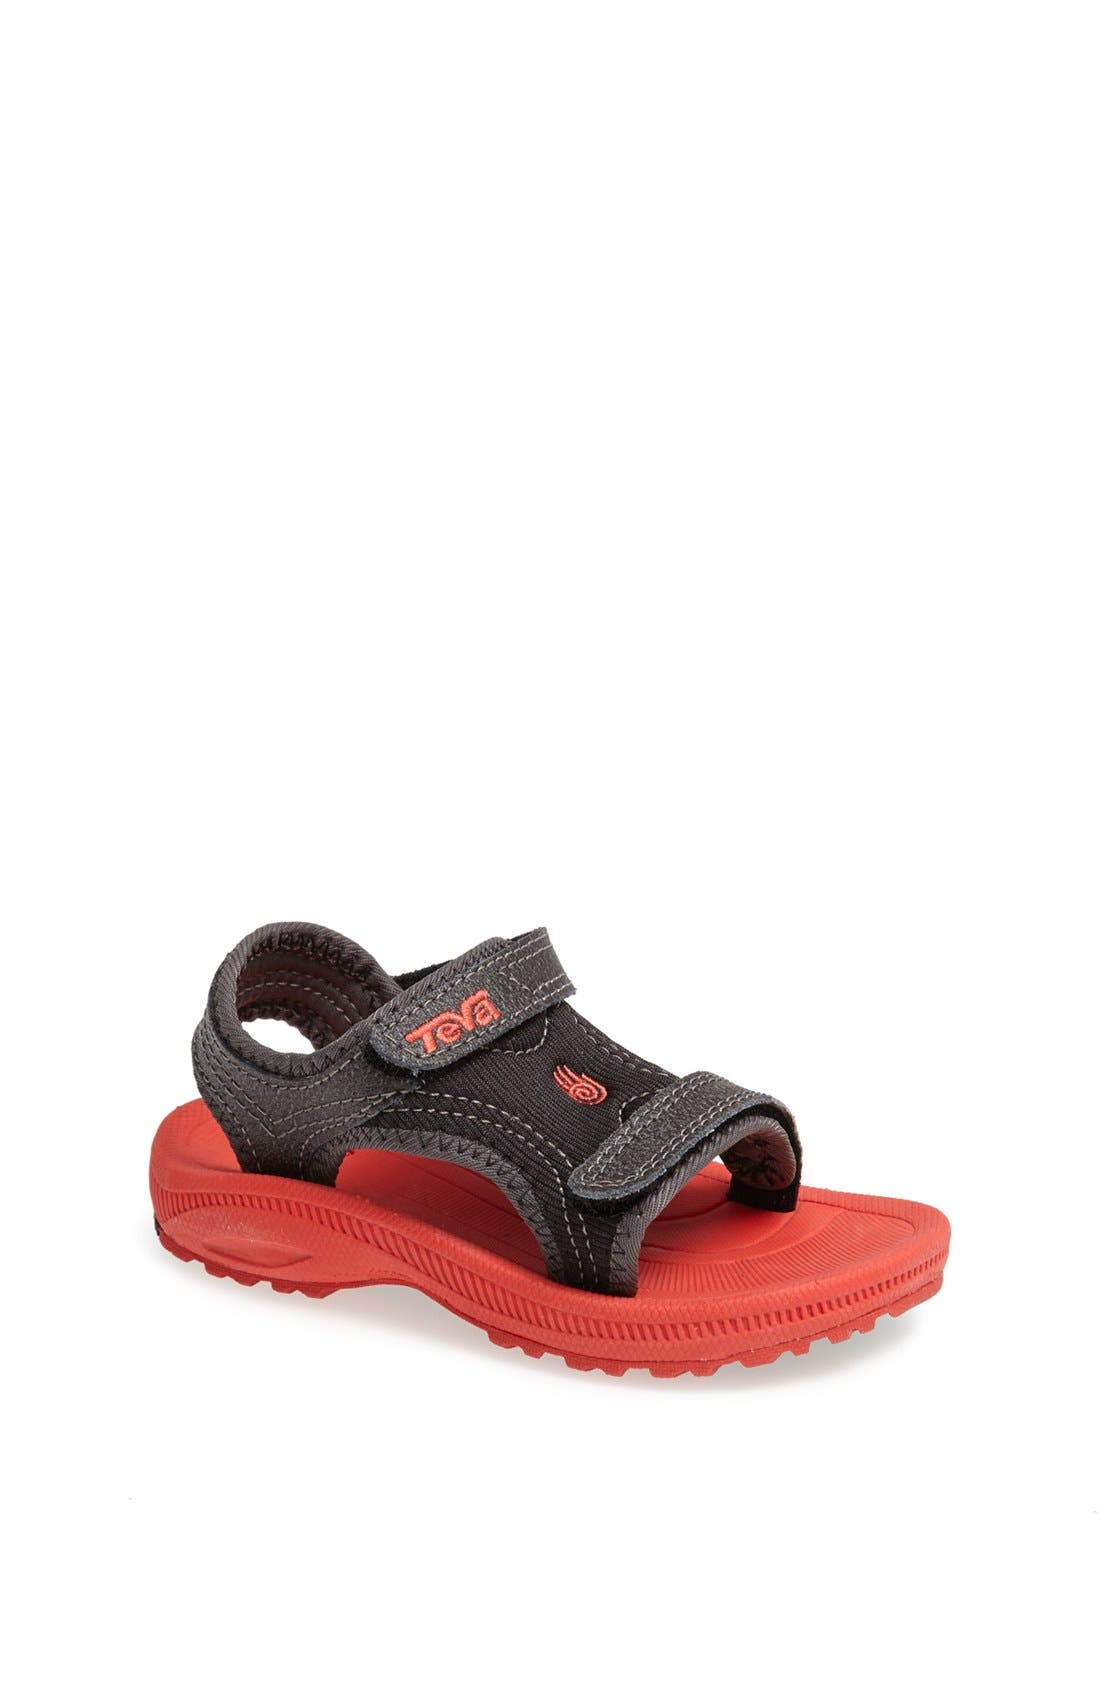 Main Image - Teva 'Psyclone 3' Sandal (Baby, Walker, Toddler & Little Kid)